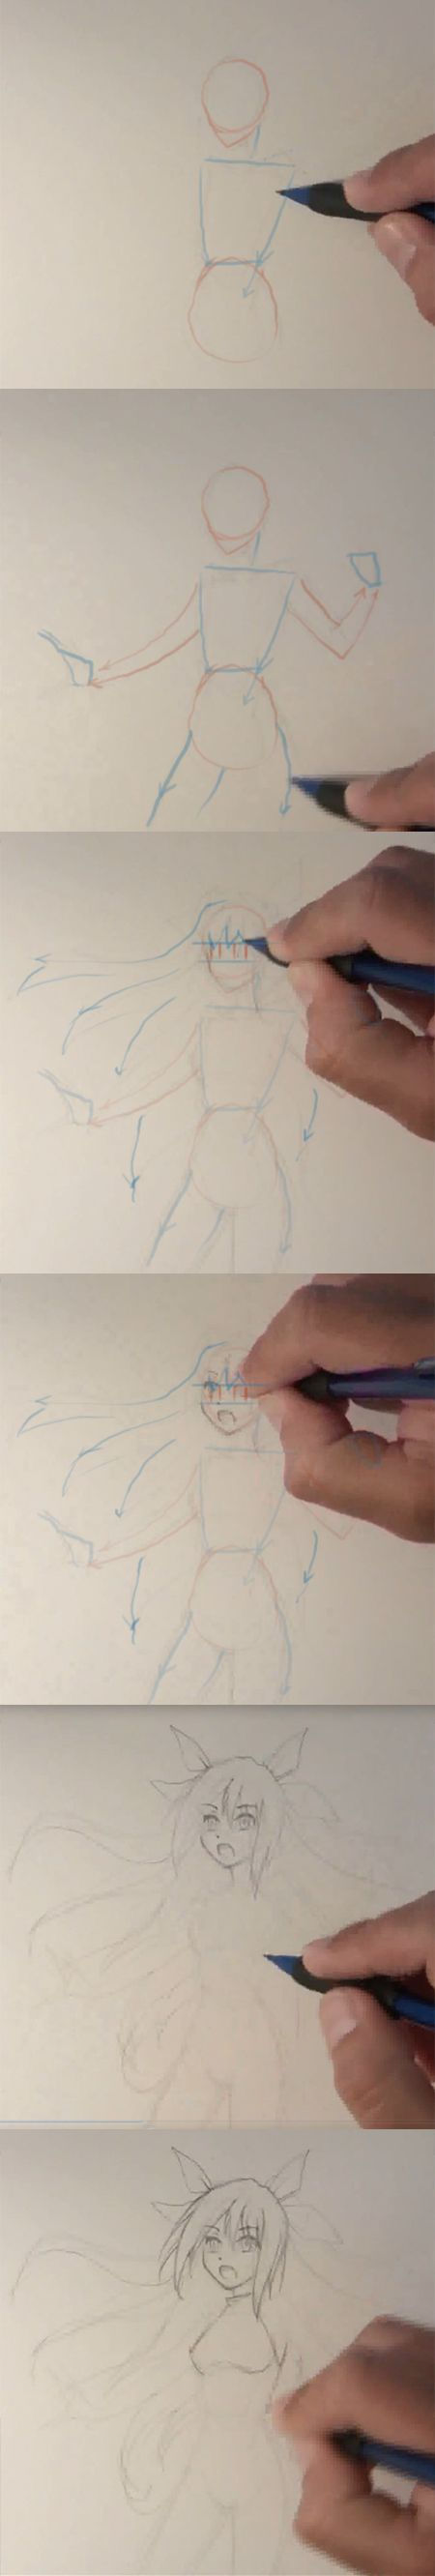 how to draw female back on hands step by step